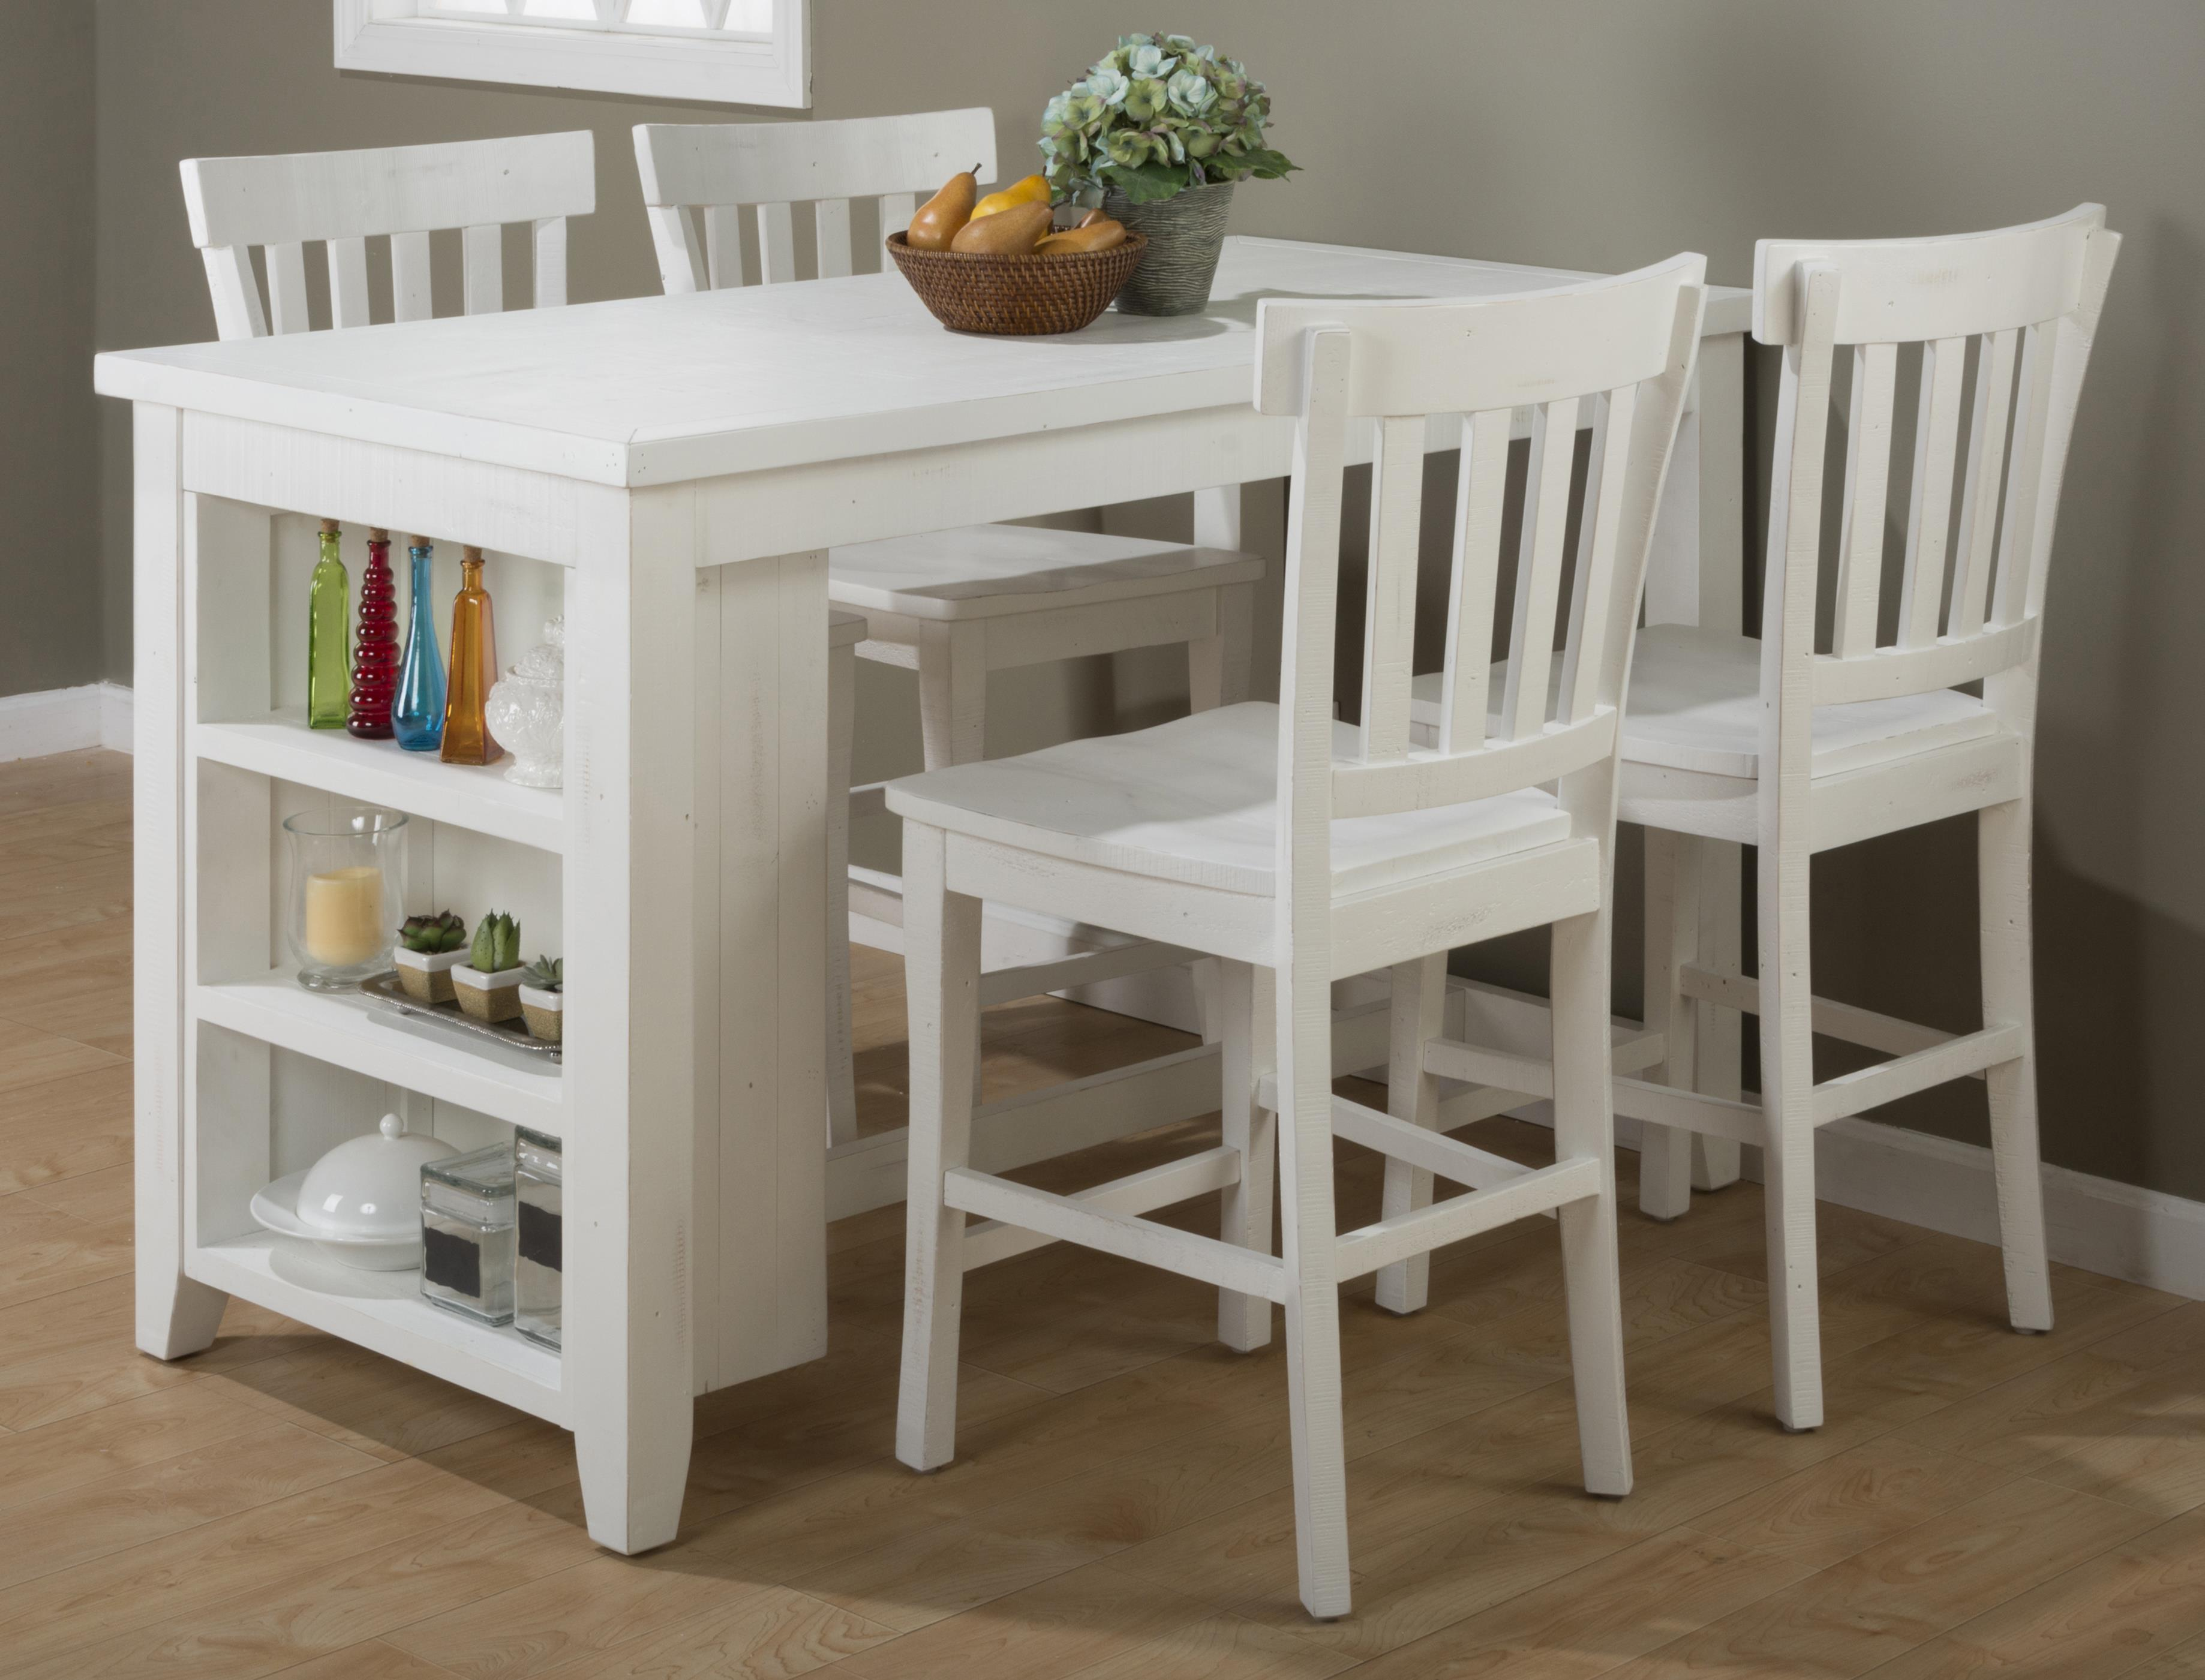 Storage Dining Tables Images Dining Table Ideas : collections2Fjofran2Fmadaket20 20 35243650764720 2064820 20649 kbr b1 from sorahana.info size 3676 x 2801 jpeg 581kB